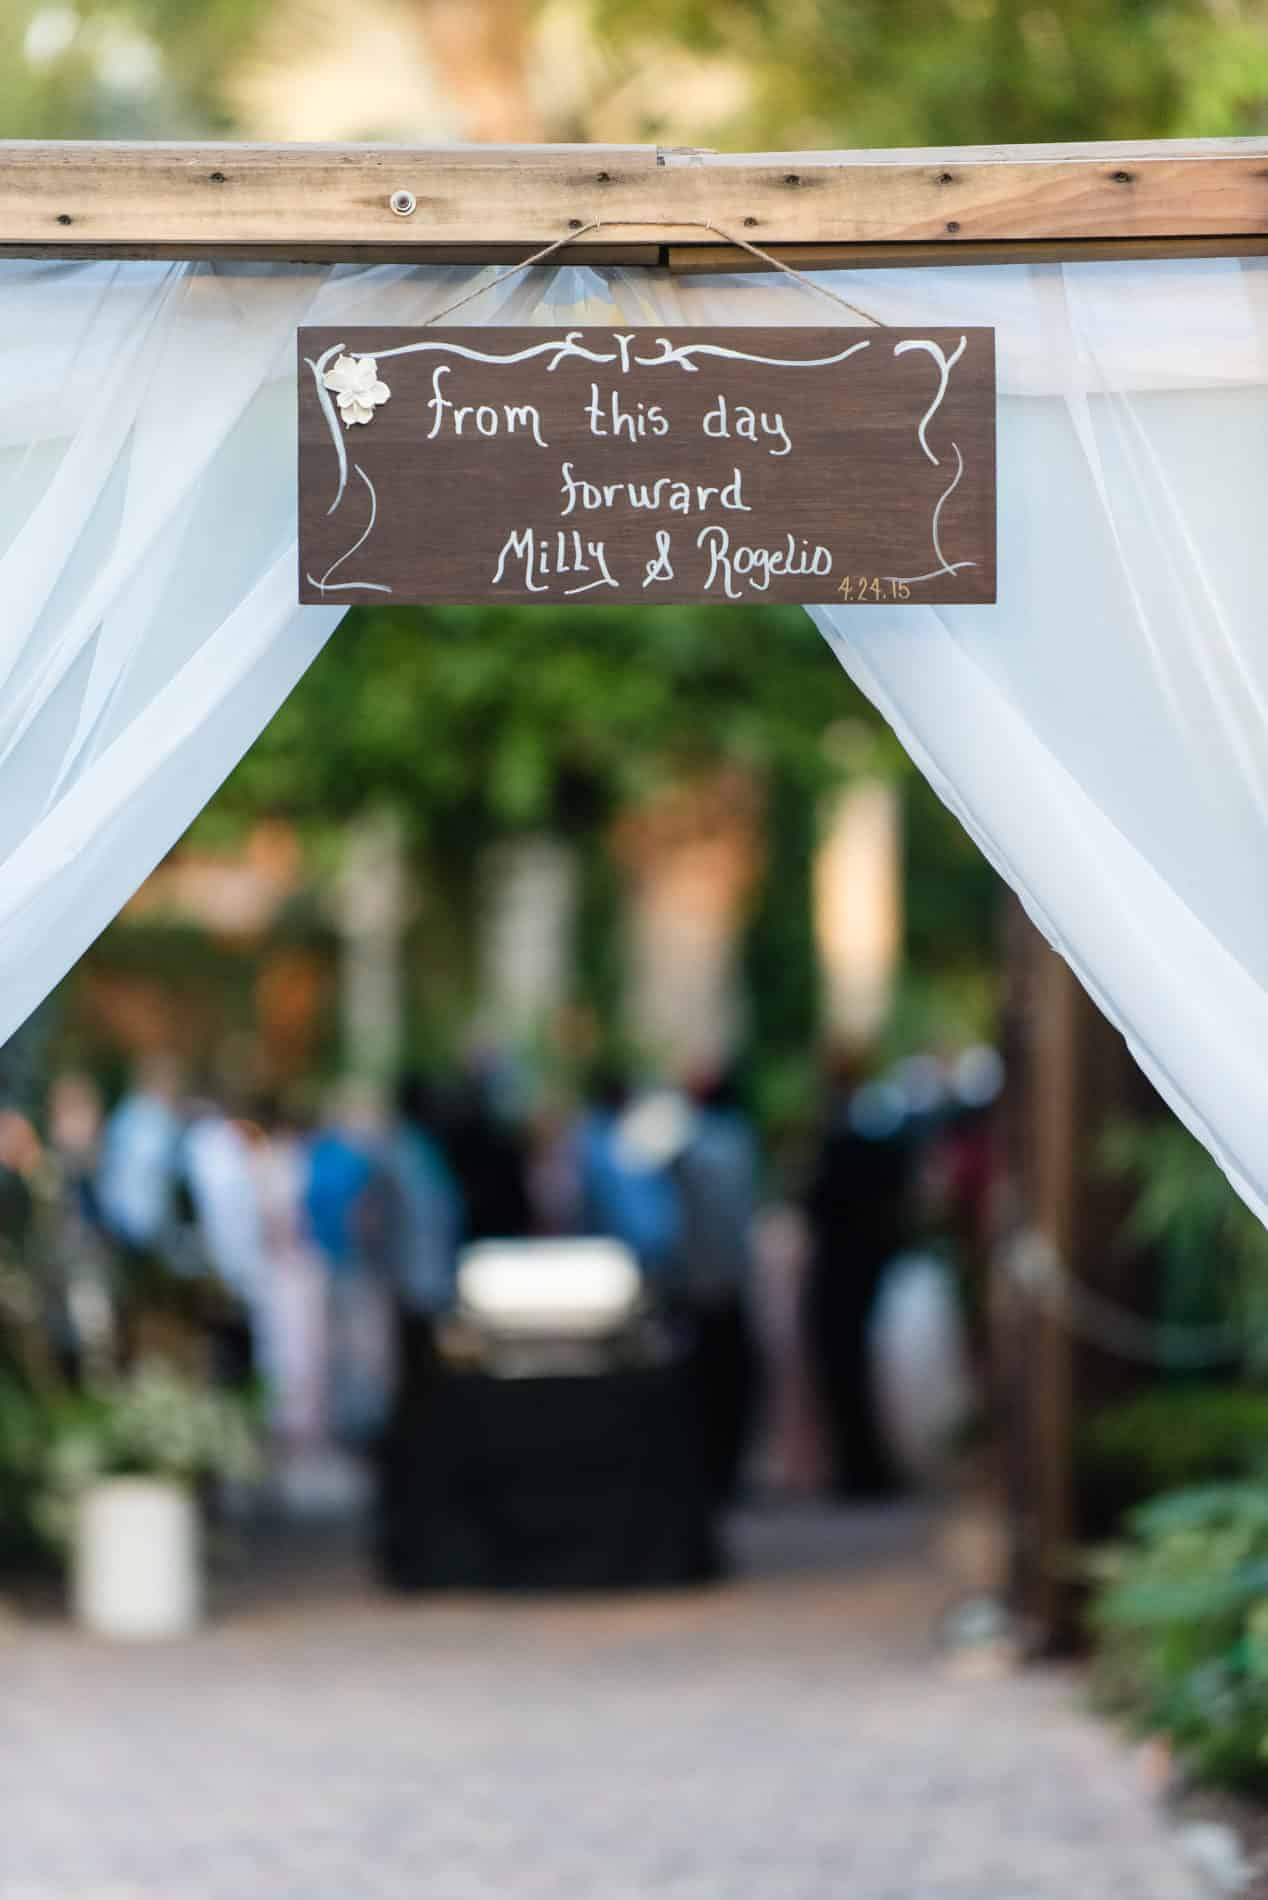 Personalized entrance details to an outdoor wedding reception